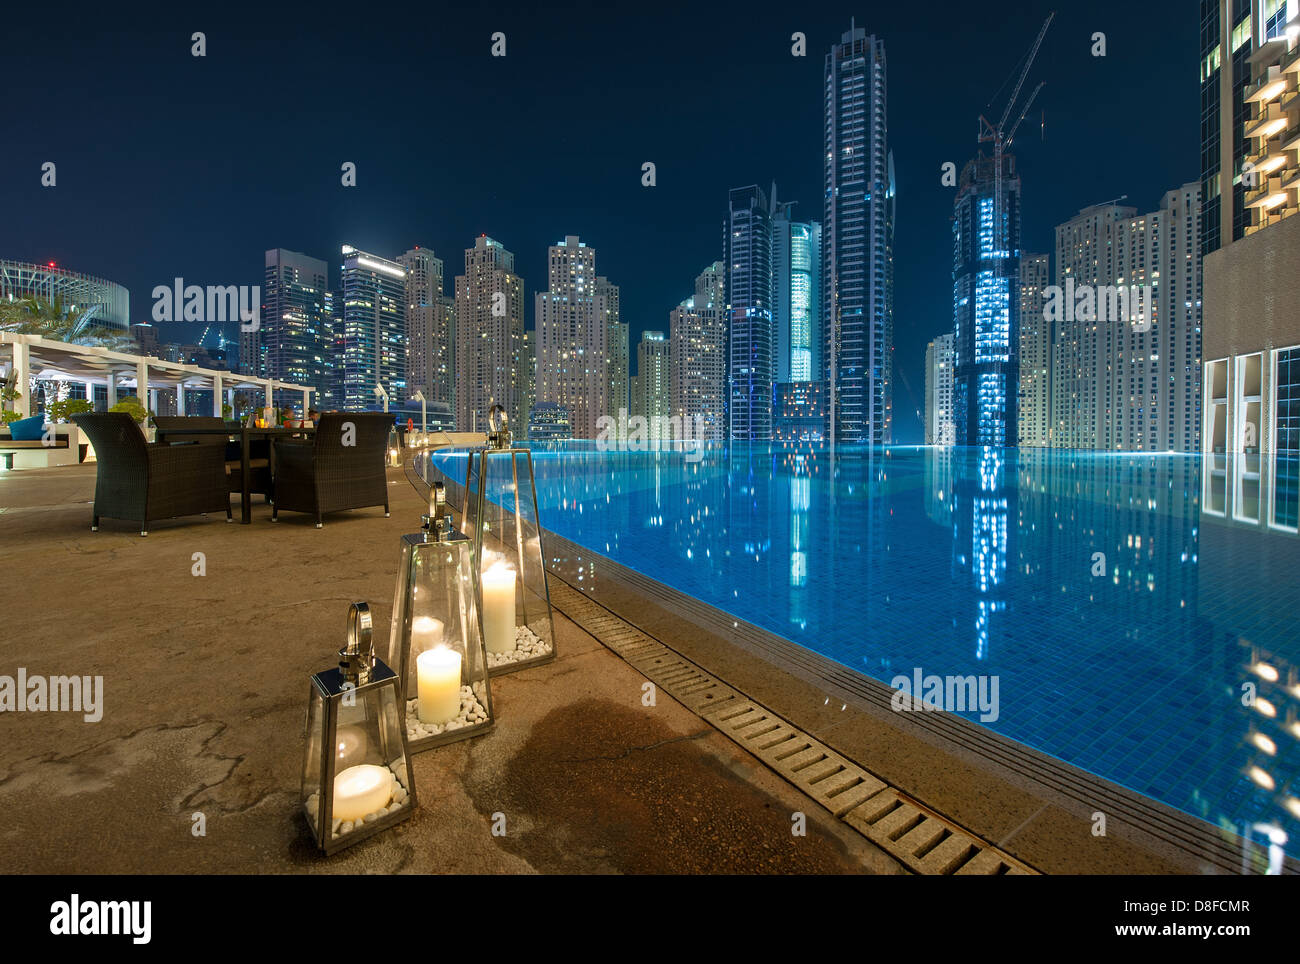 View of dubai marina from the pool bar of the address The address dubai marina swimming pool